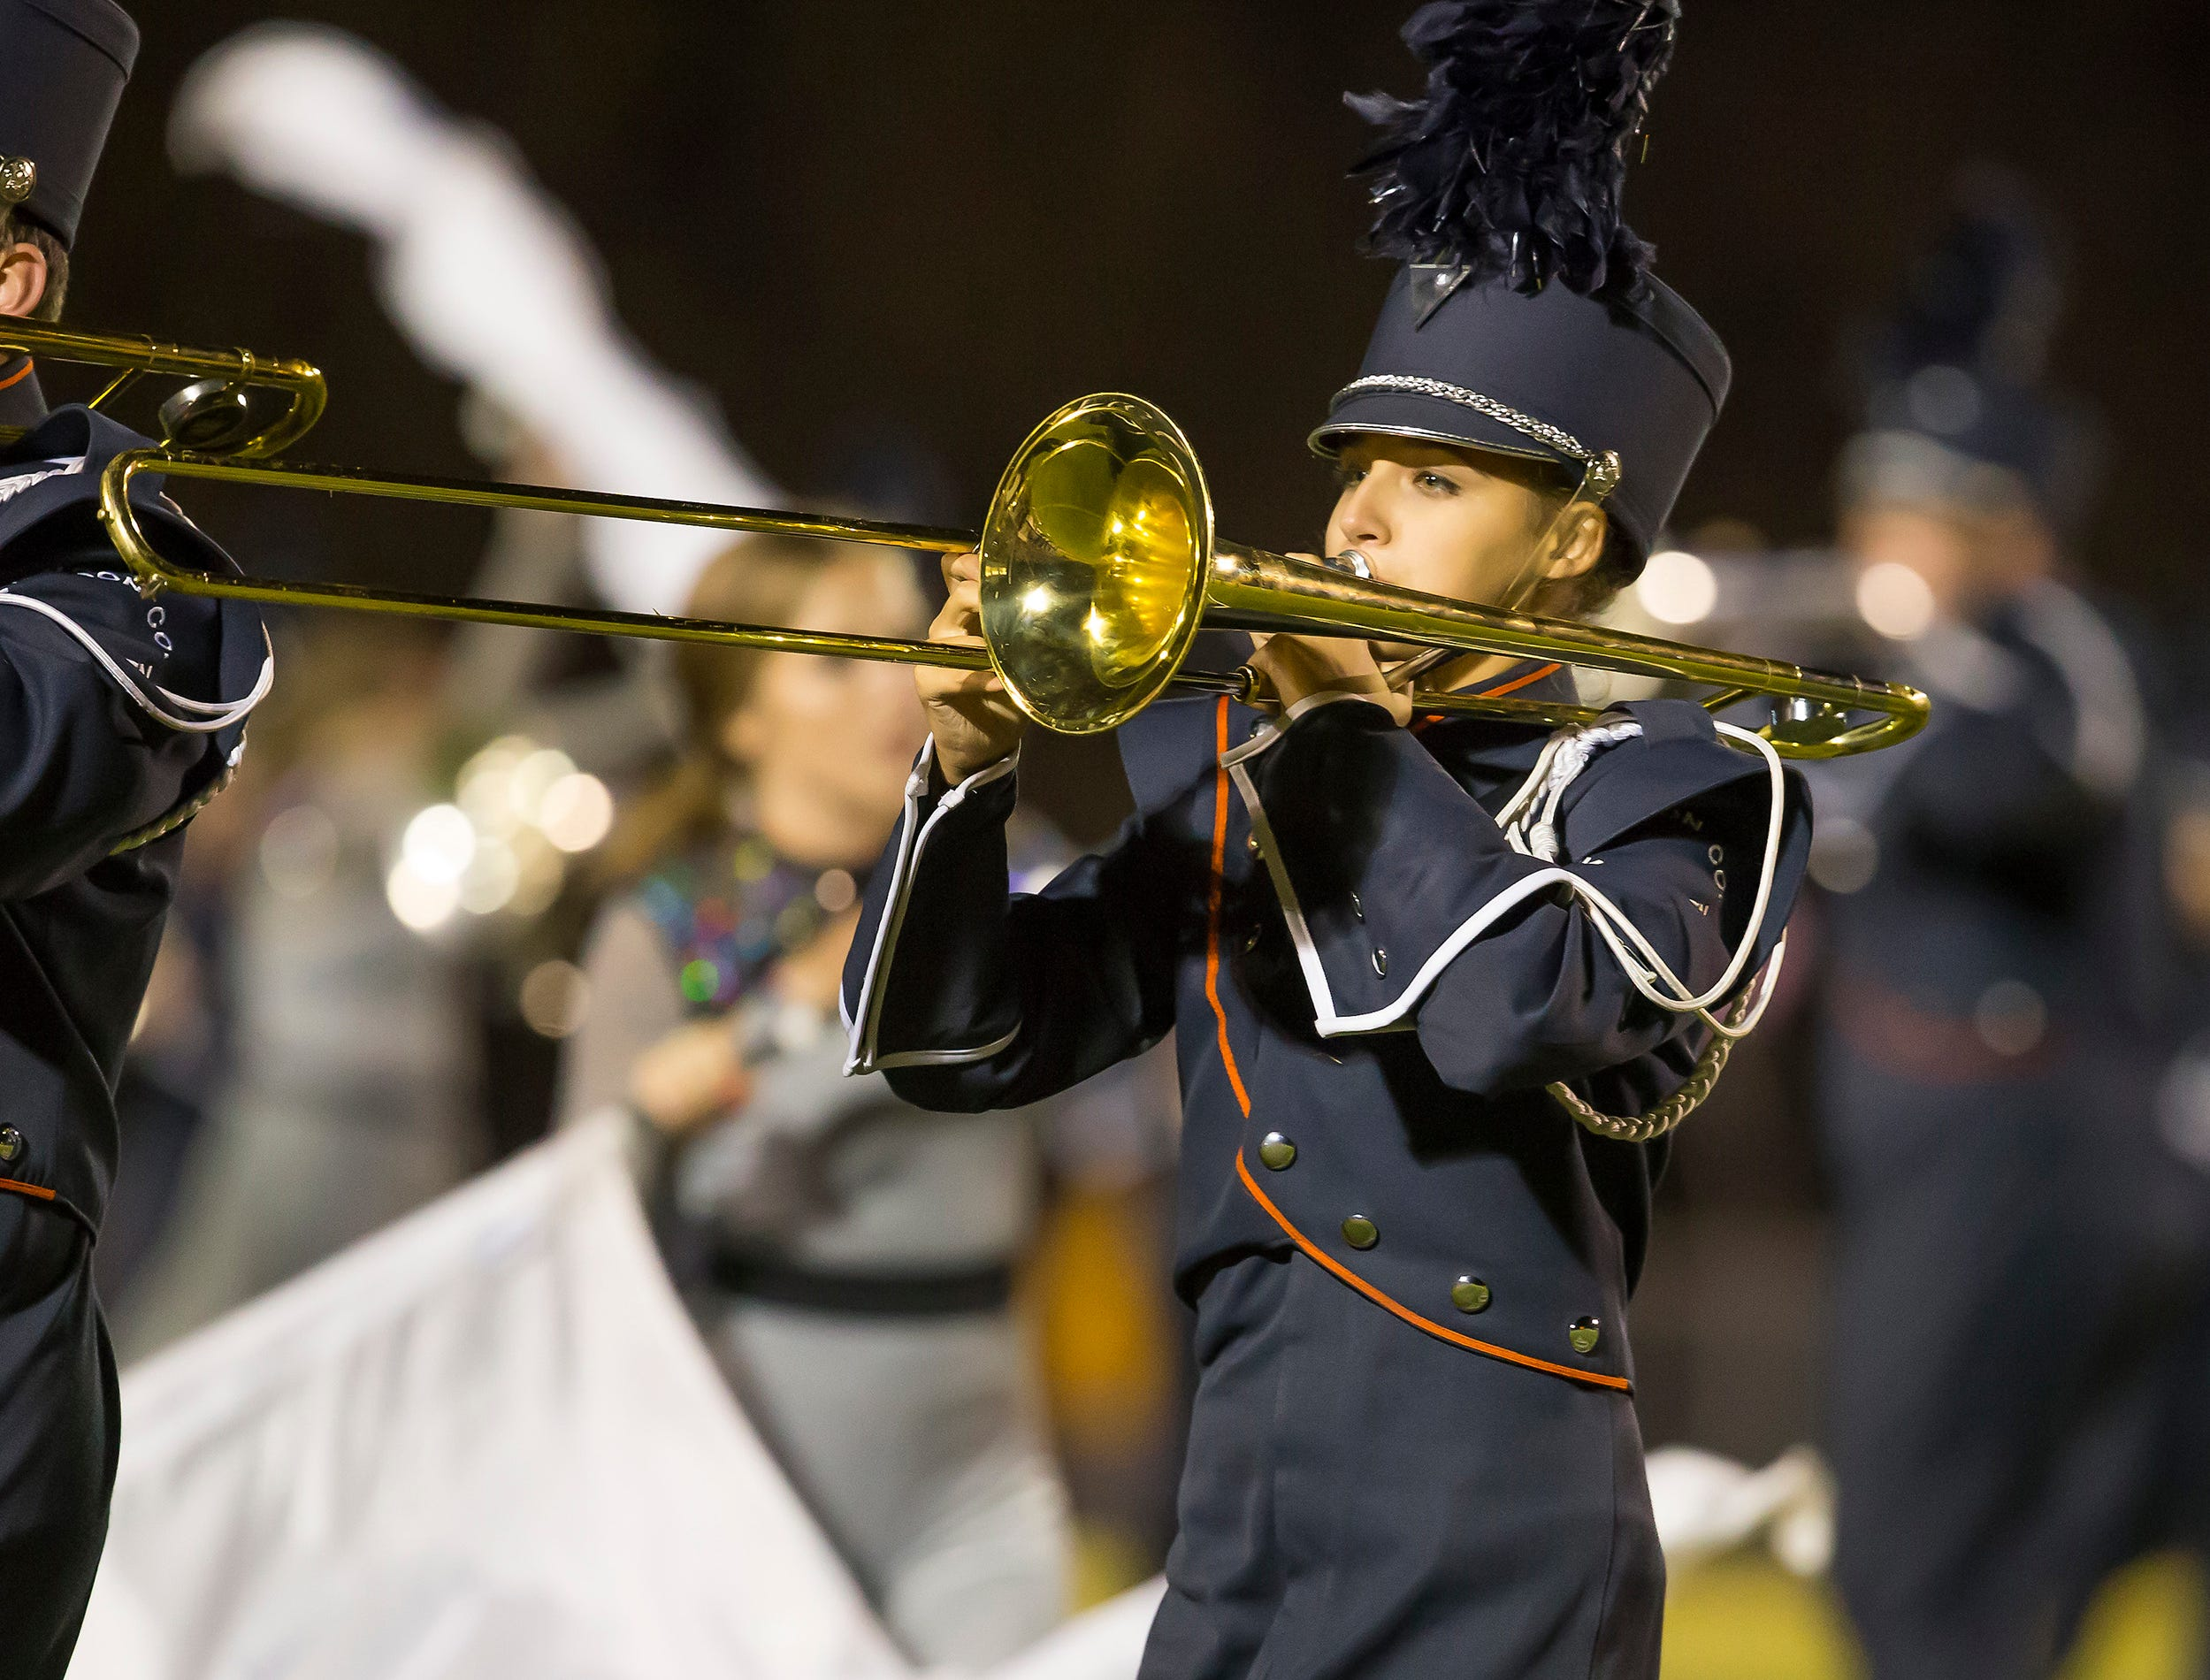 Dickson County's Band  and Color Guard performs at half time of the Dickson County vs Lawrence County game.